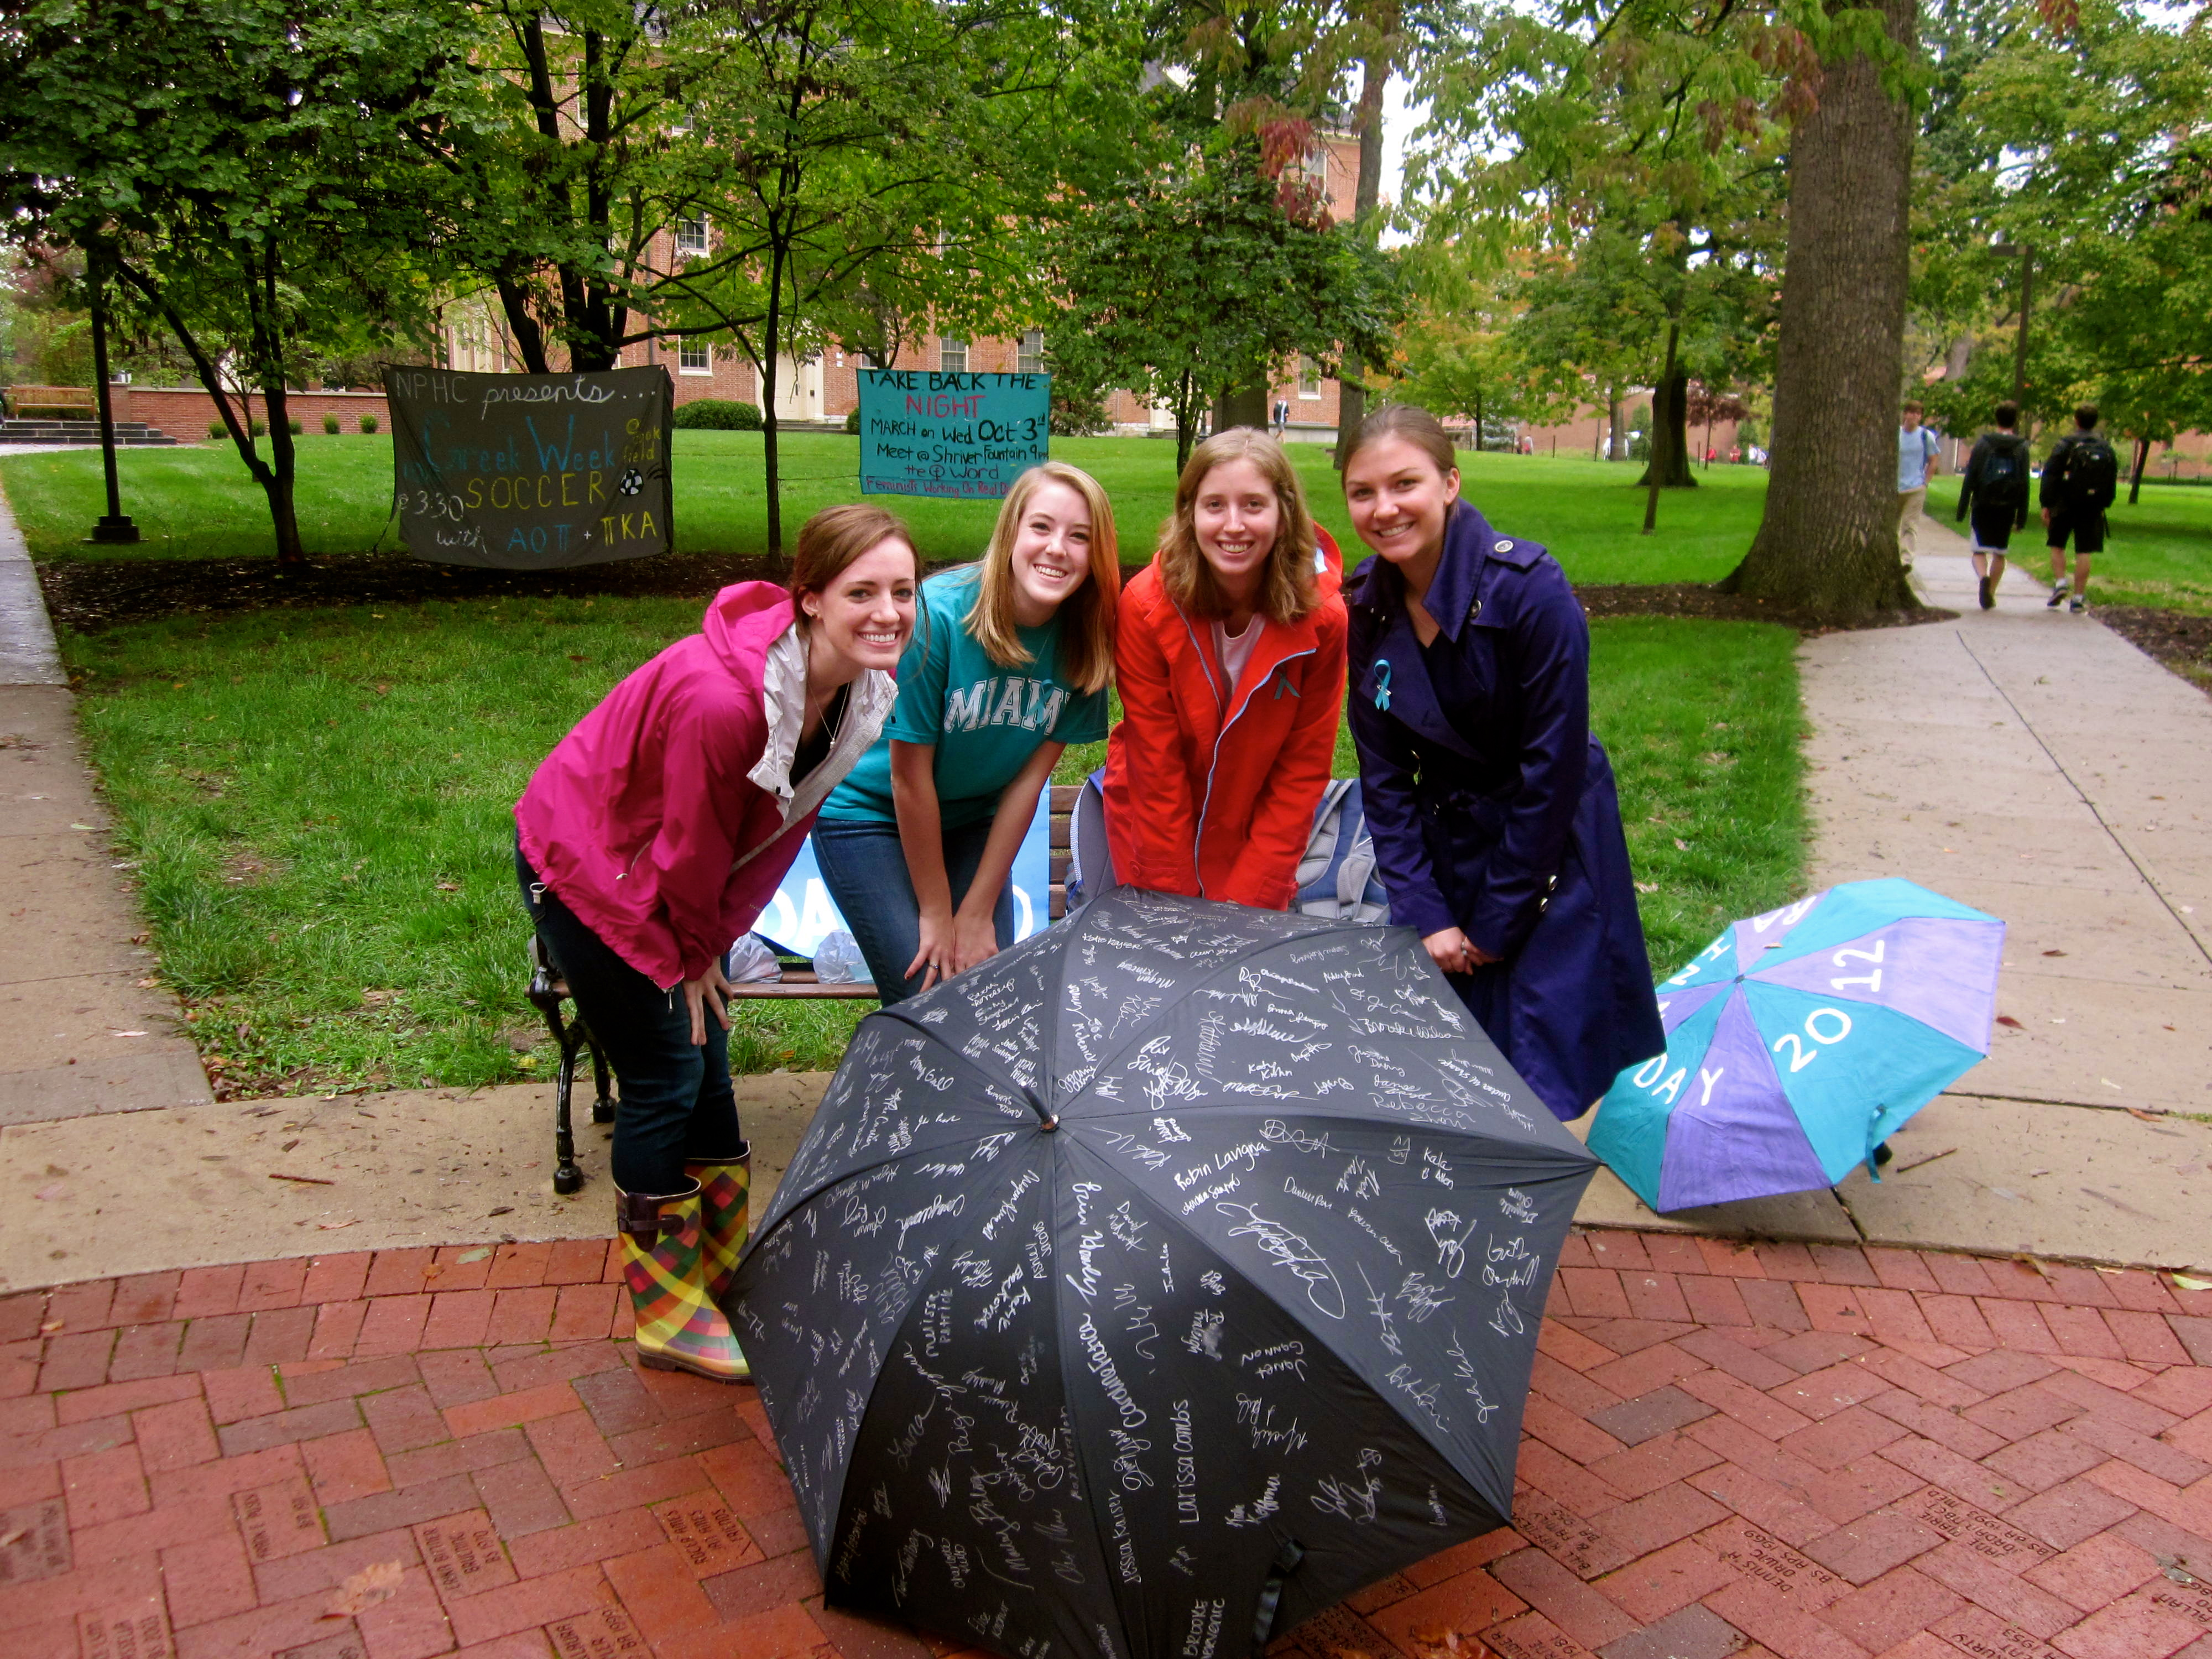 RAINN Day at Miami University